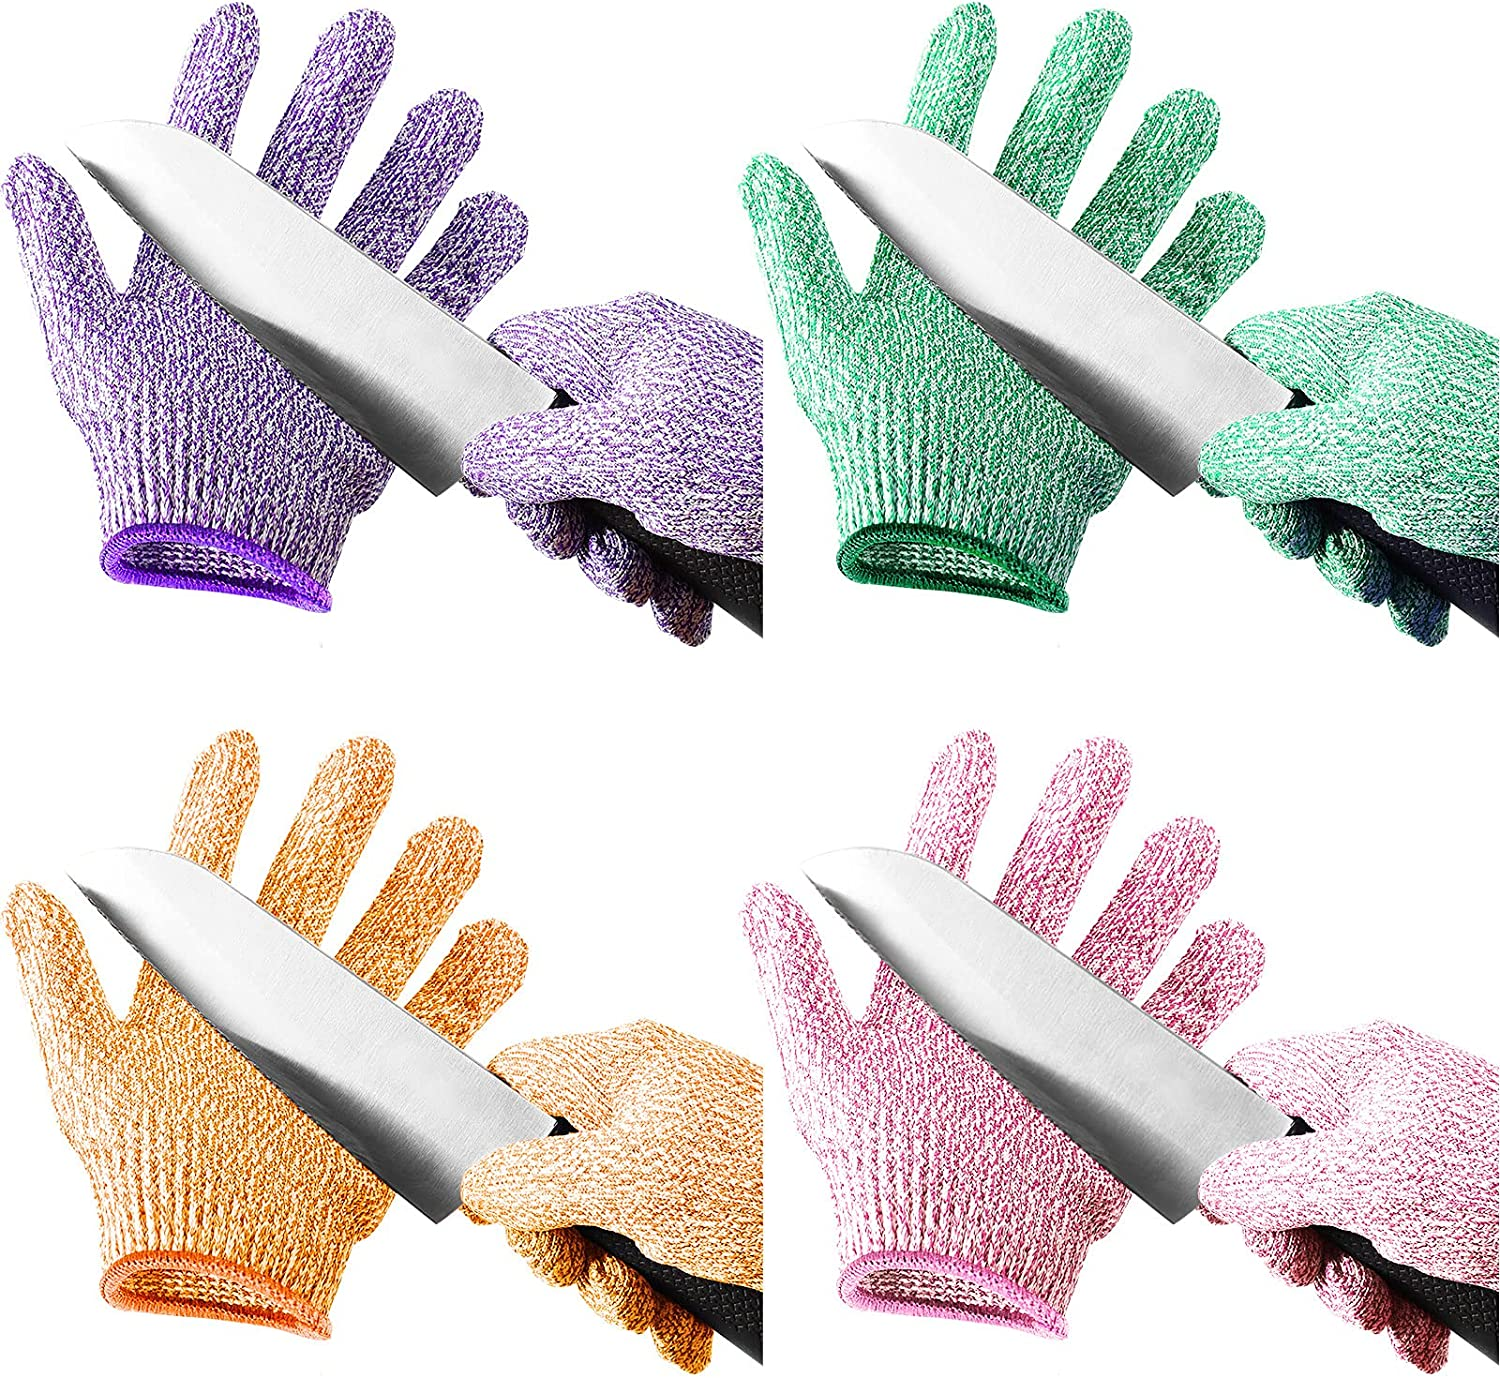 4 Selling Pairs Kids Cut Resistant 5 Protection Gloves Special sale item Level Safe